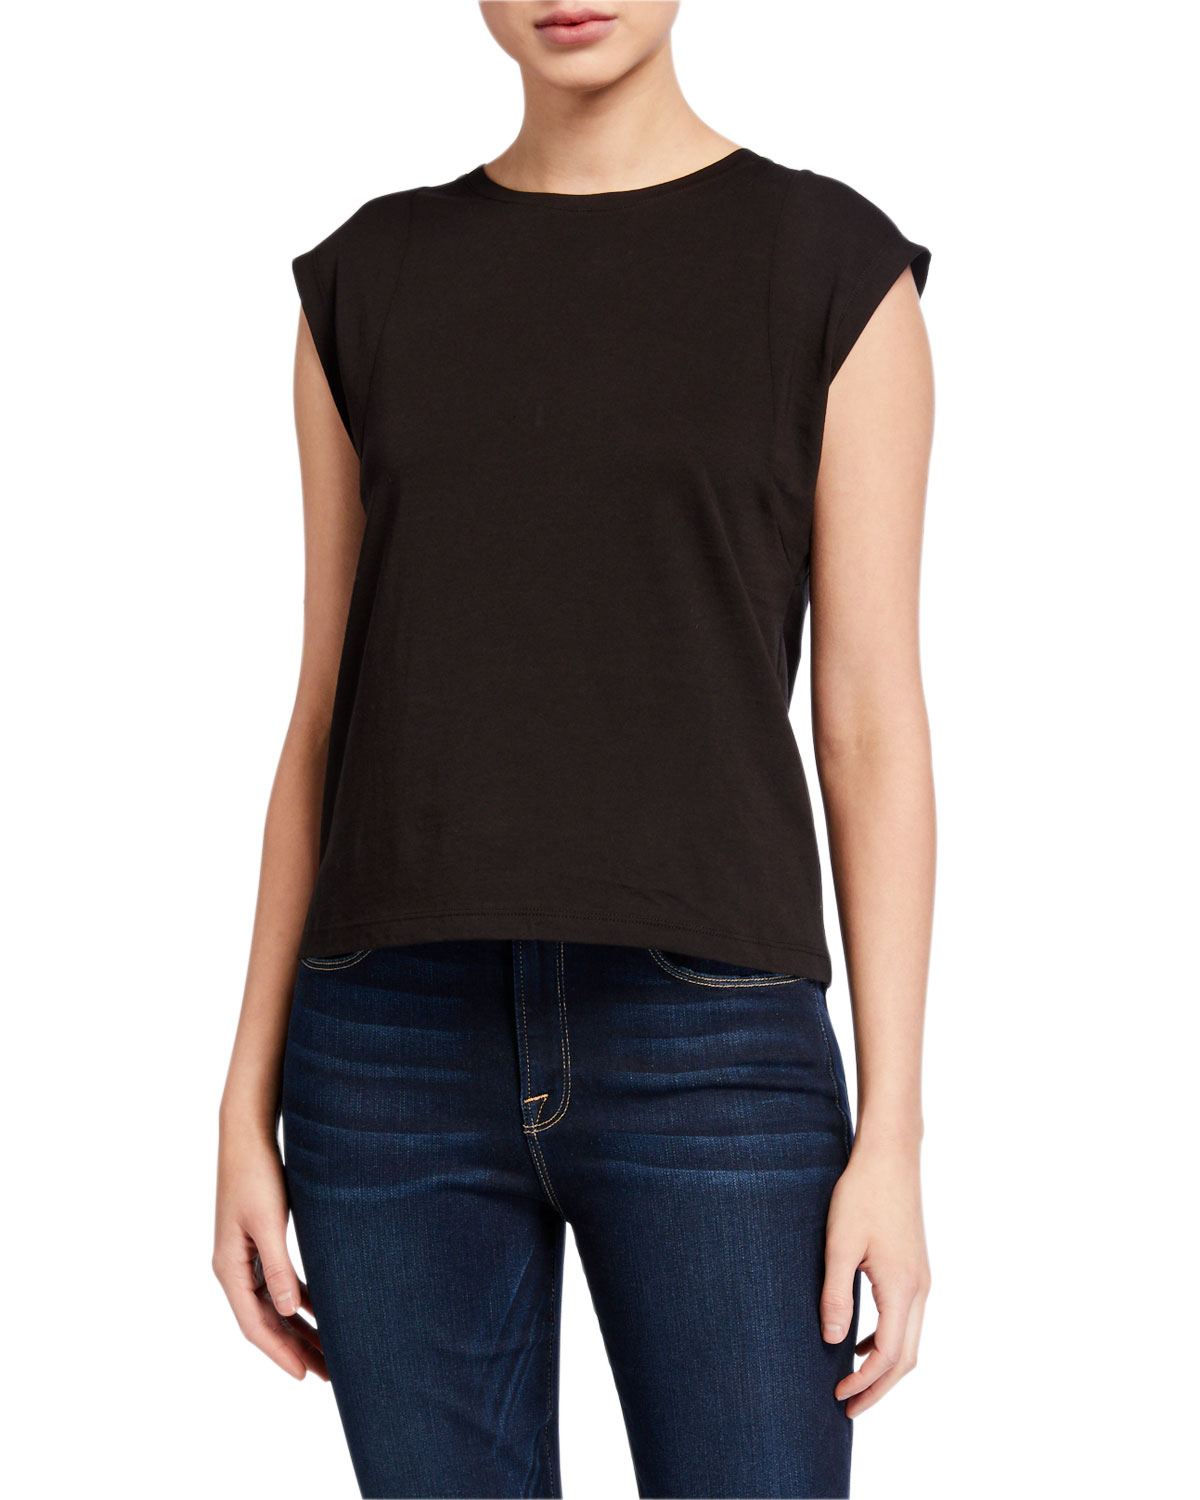 Frame Tops LE HIGH-RISE MUSCLE TEE